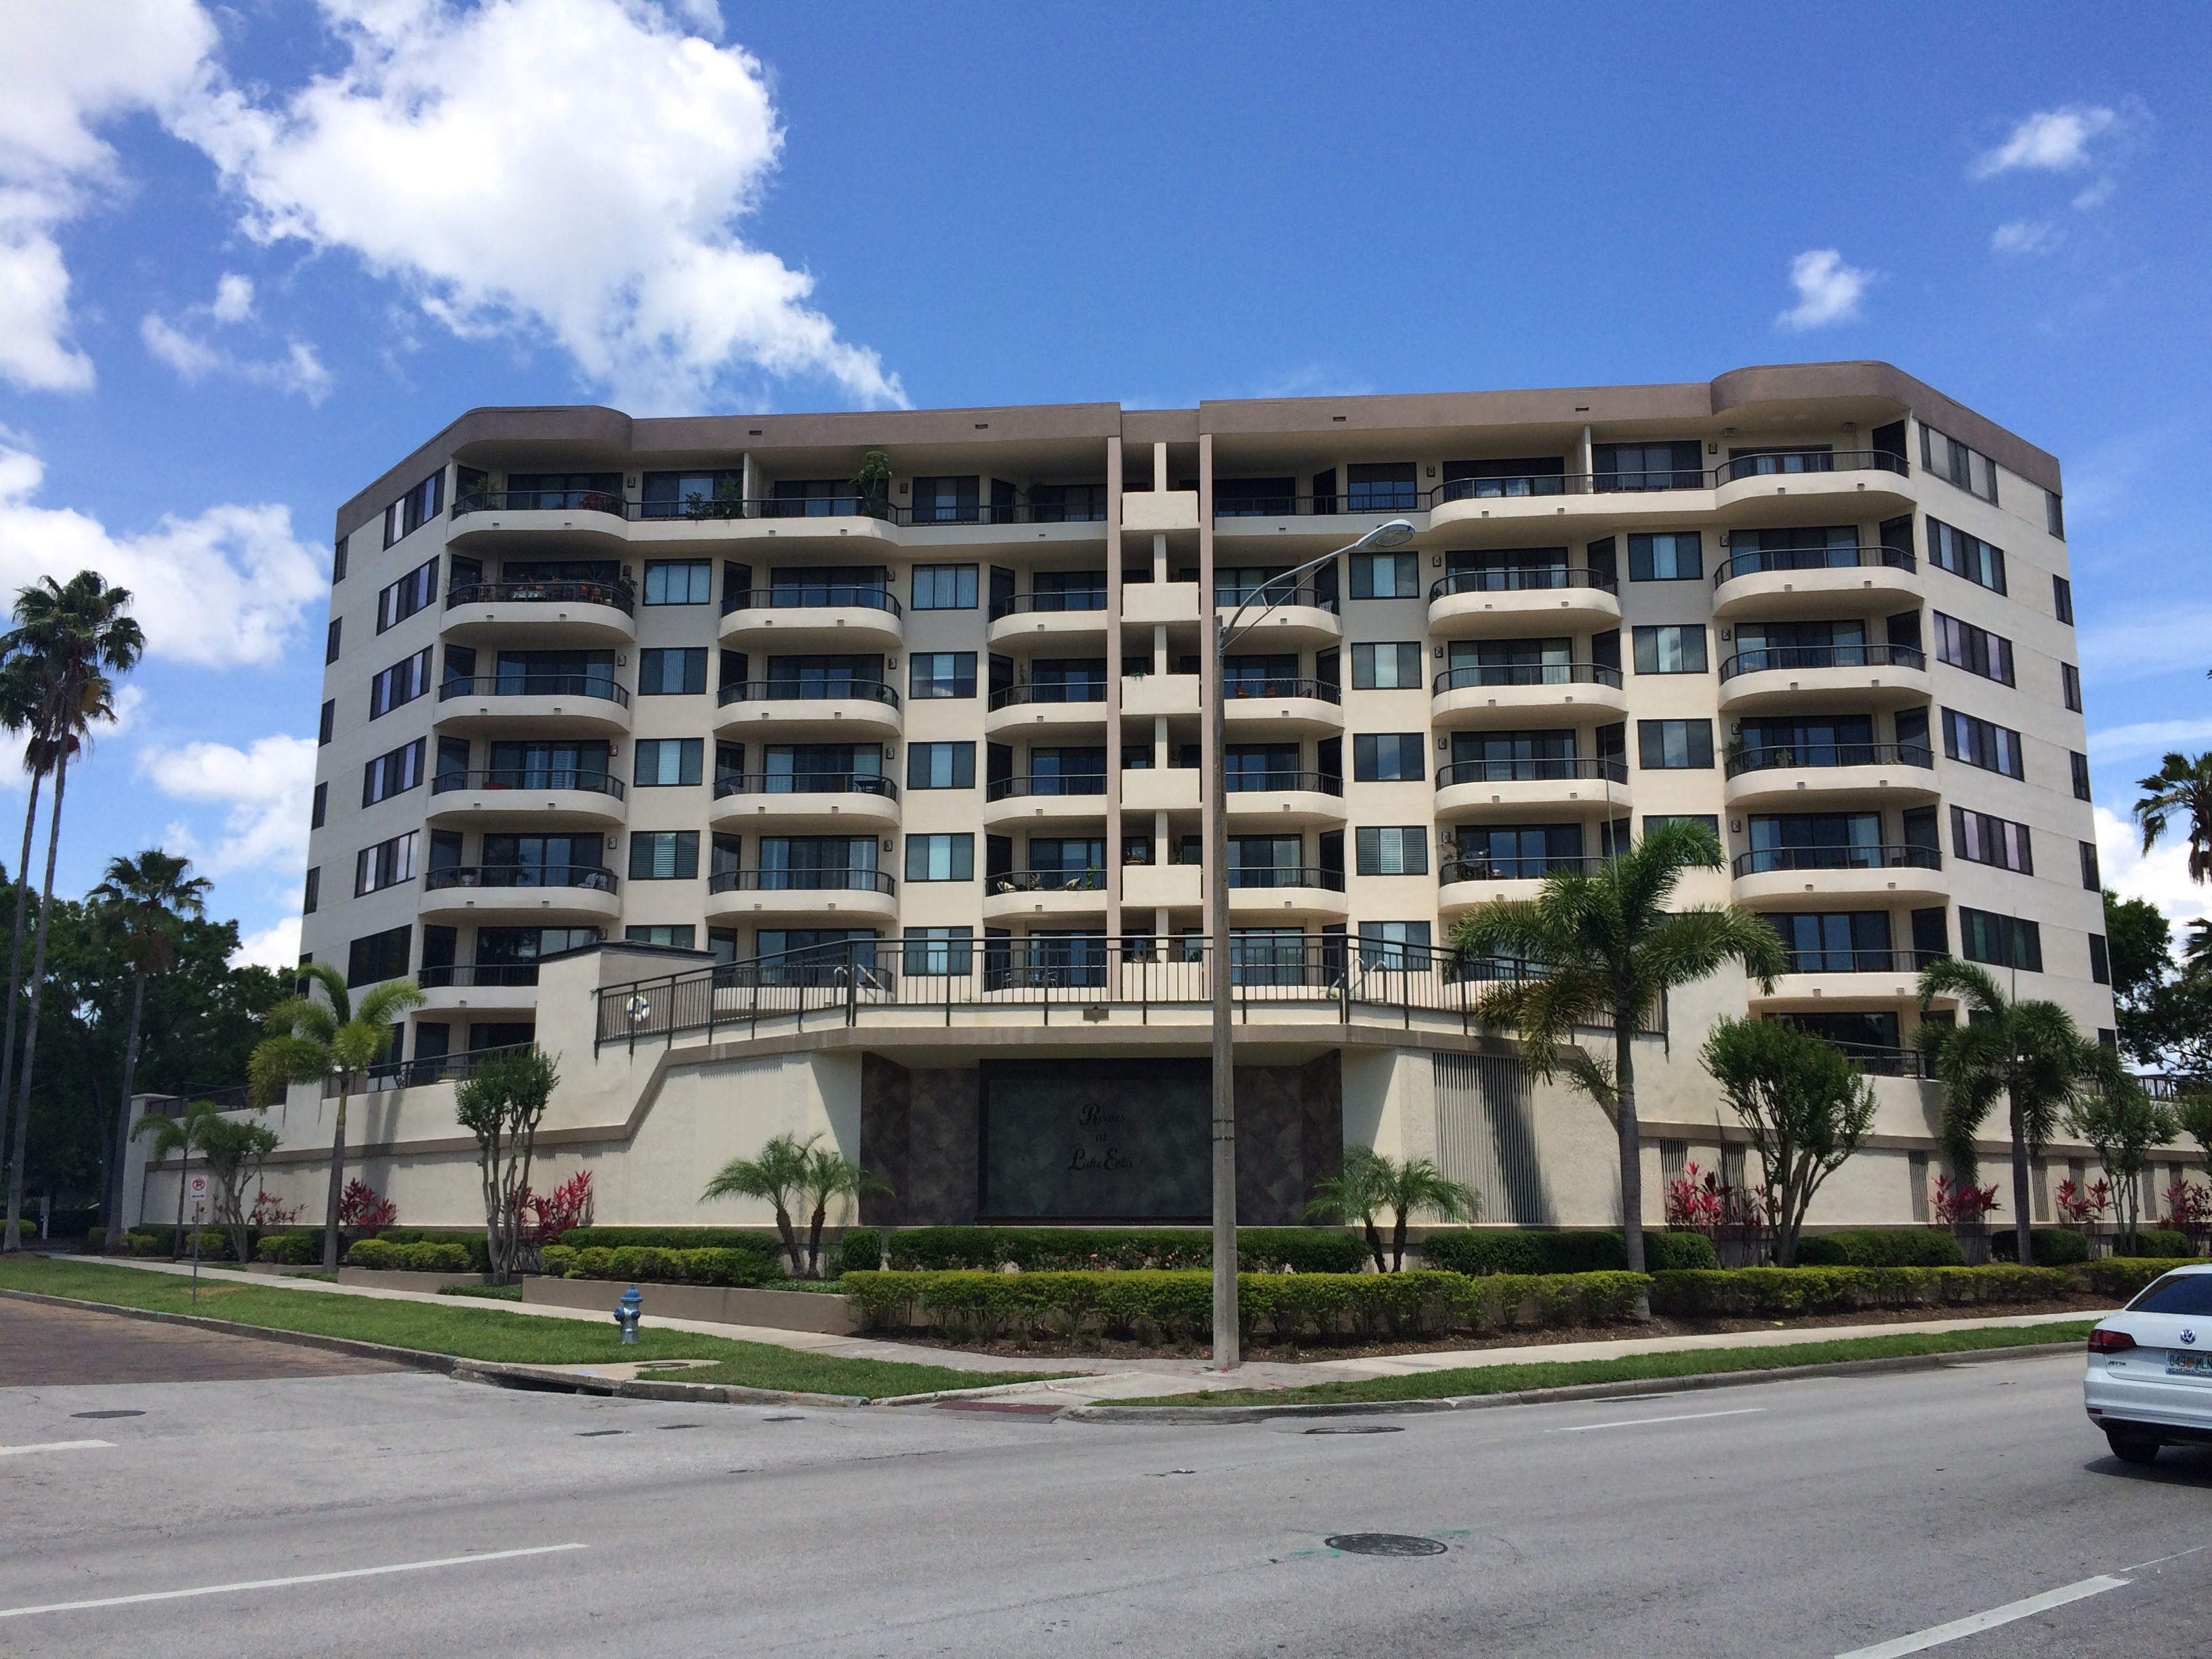 Reeves House Orlando Condo Critic